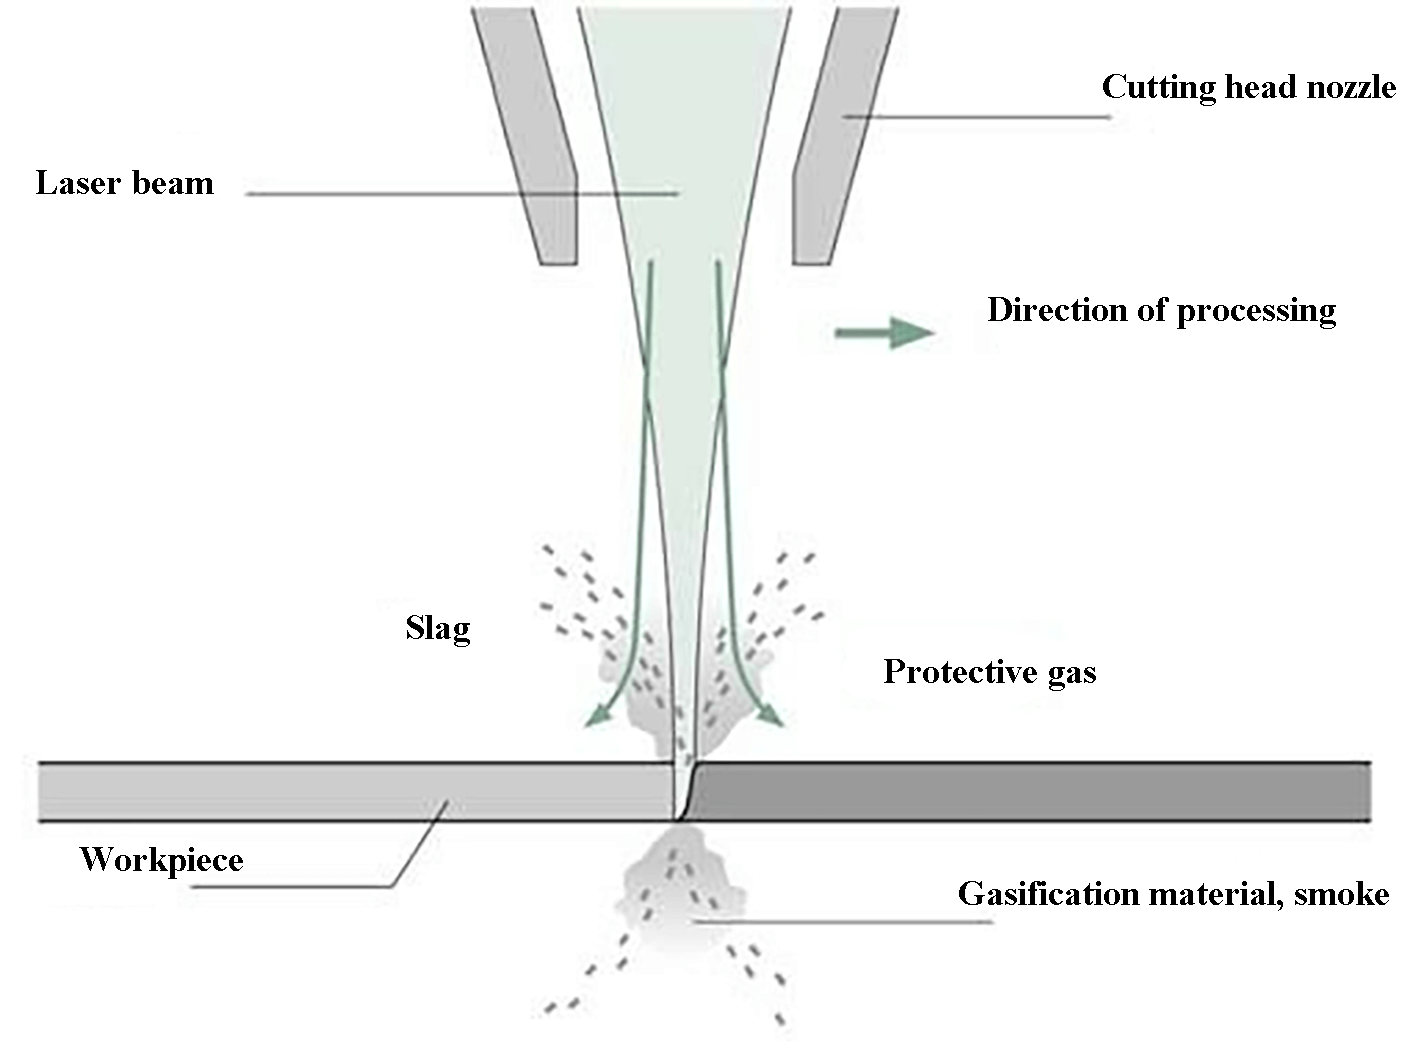 Fig. 2 Laser gasification cutting